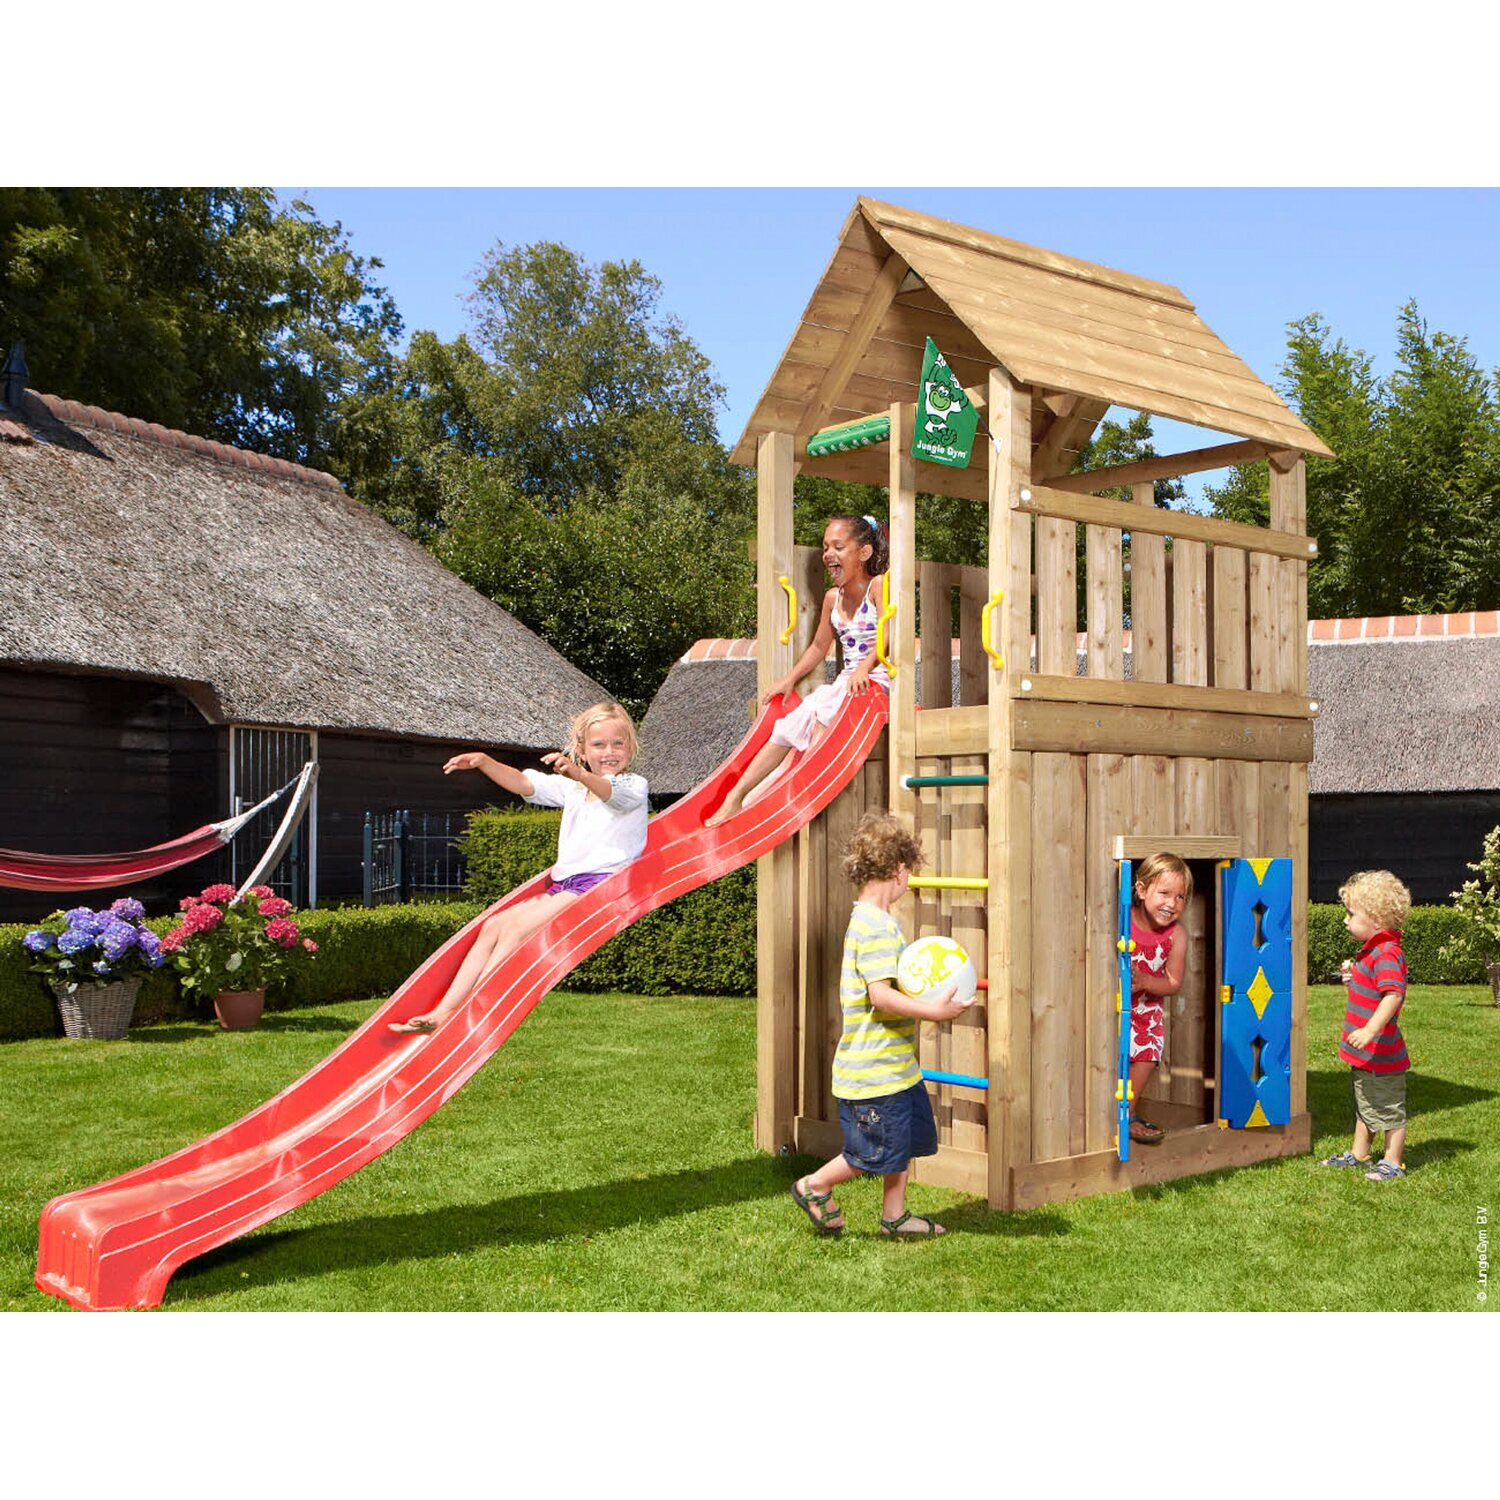 jungle gym holzspielturm cabin spielhaus mit rutsche rot kaufen bei obi. Black Bedroom Furniture Sets. Home Design Ideas